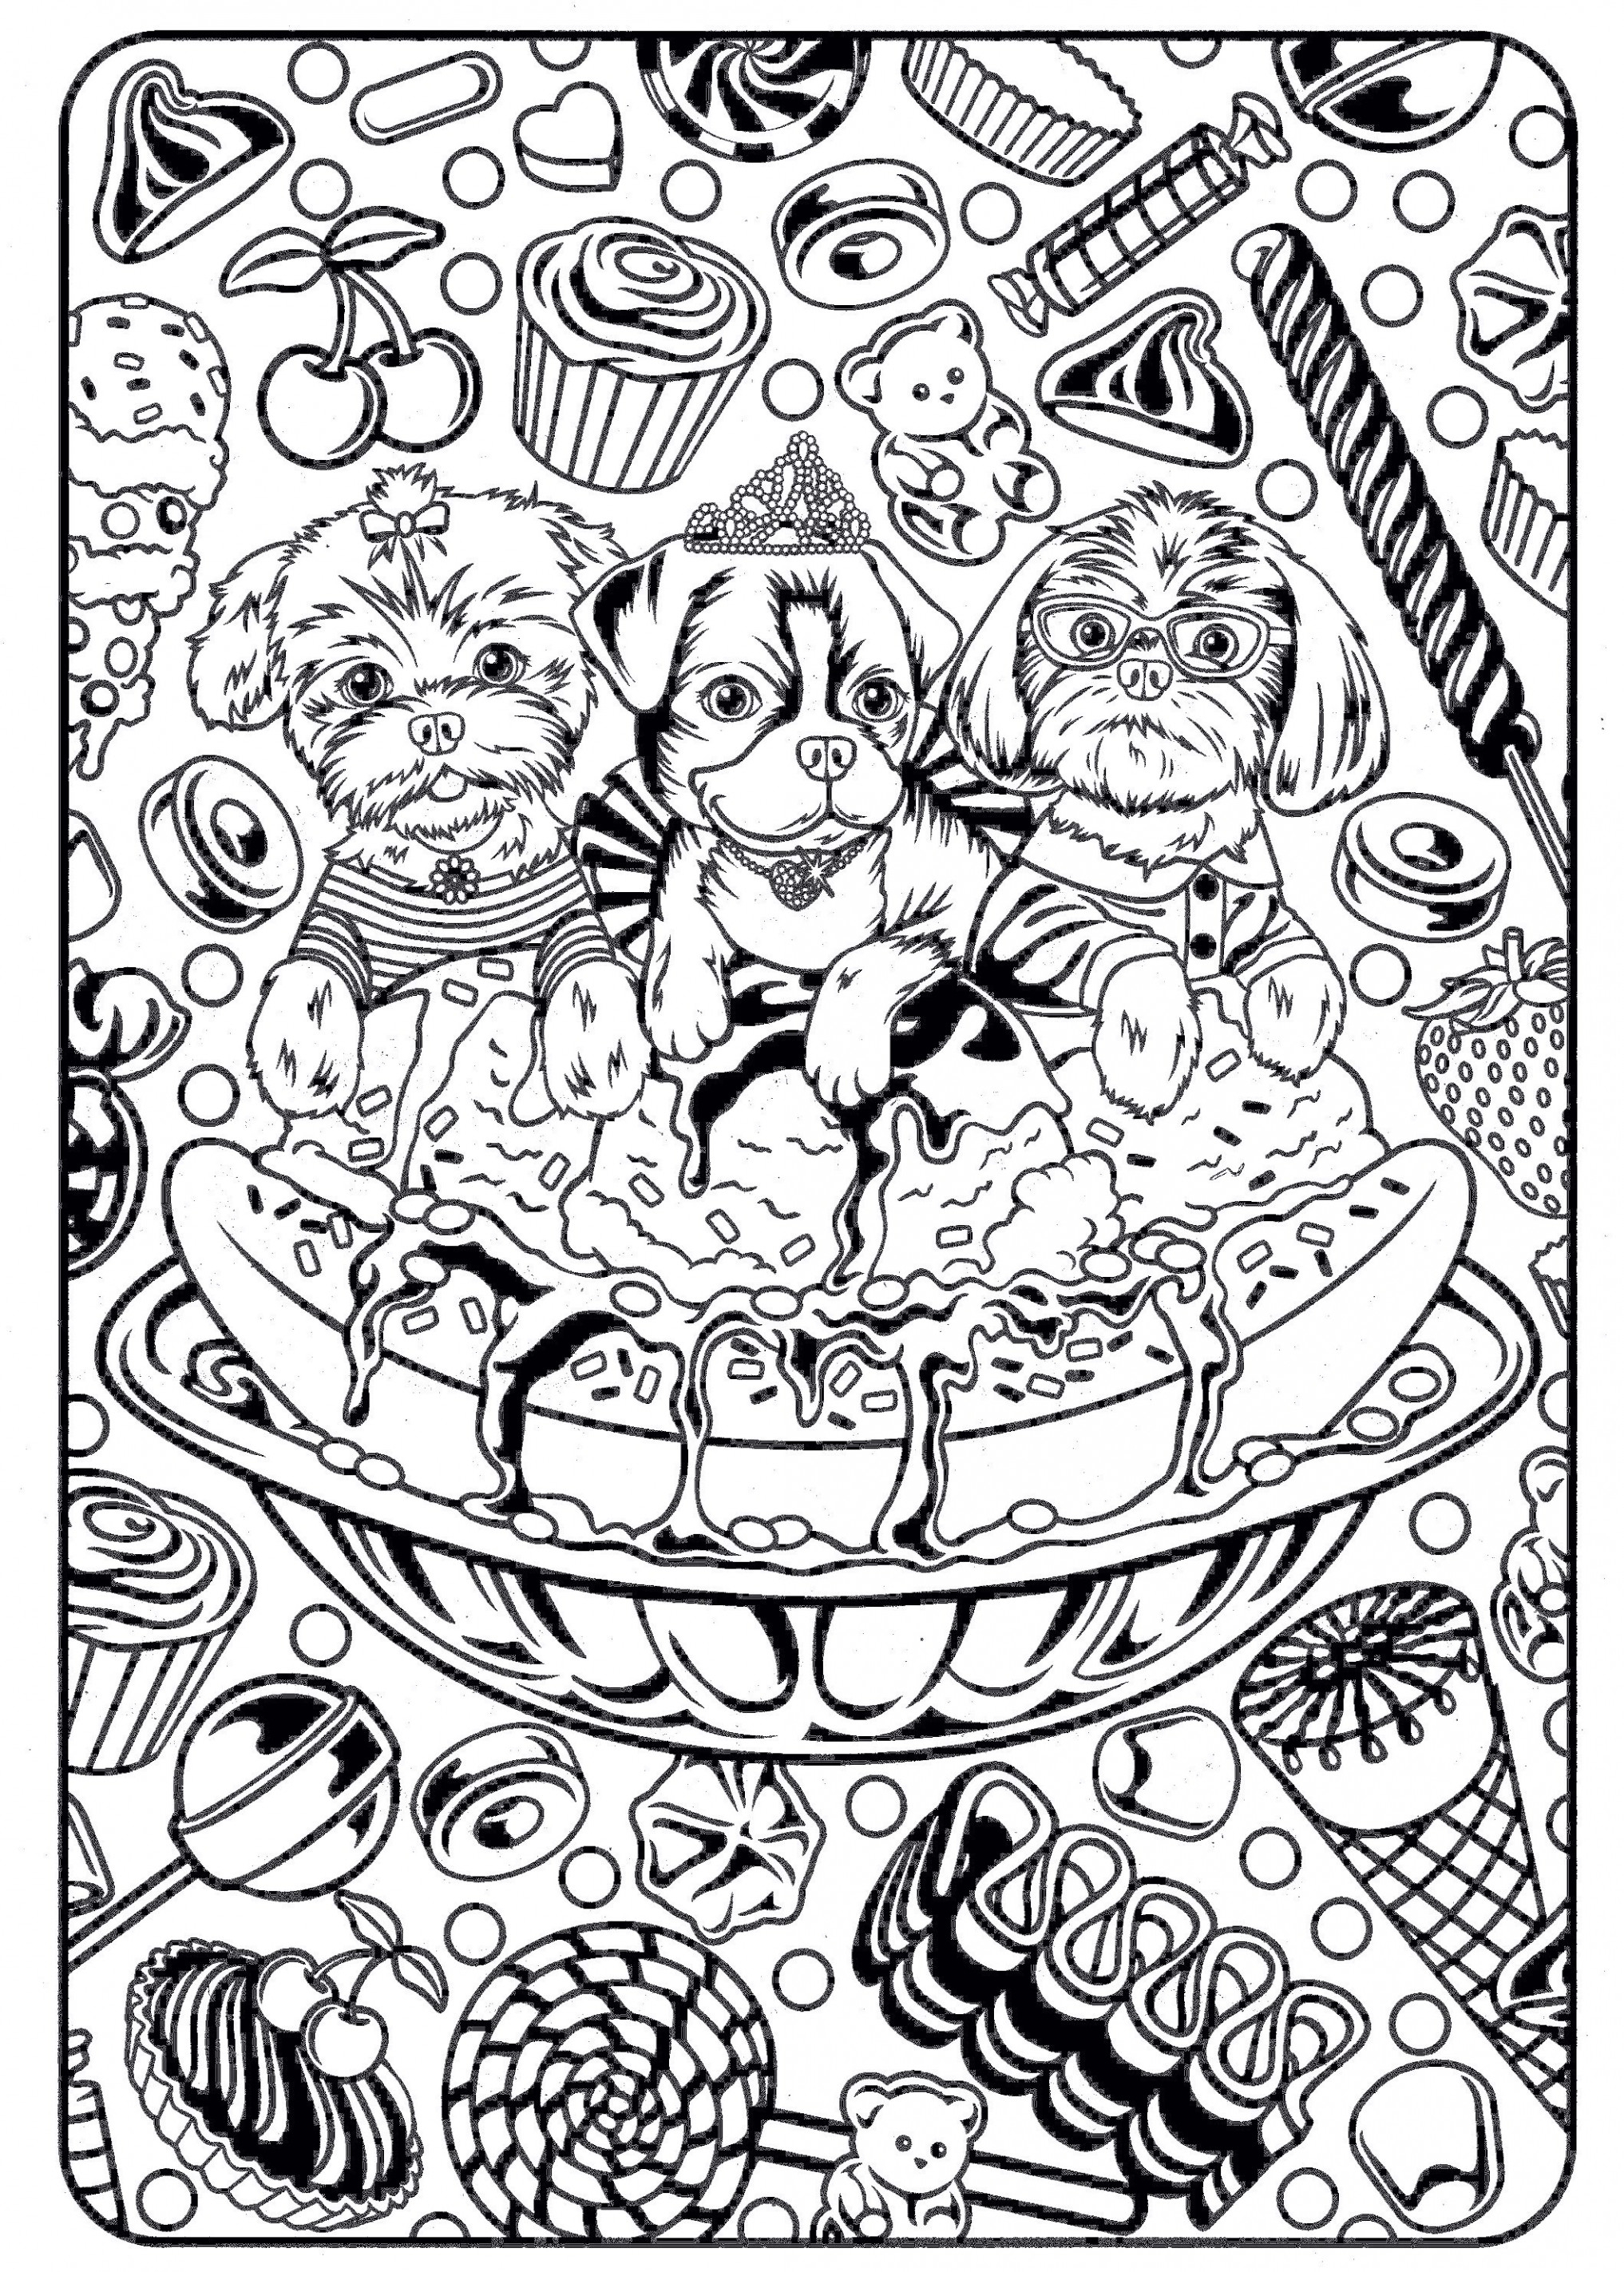 Fall Color Page Snake Coloring Page Ing Pages Kids Color Pages New Fall Coloring